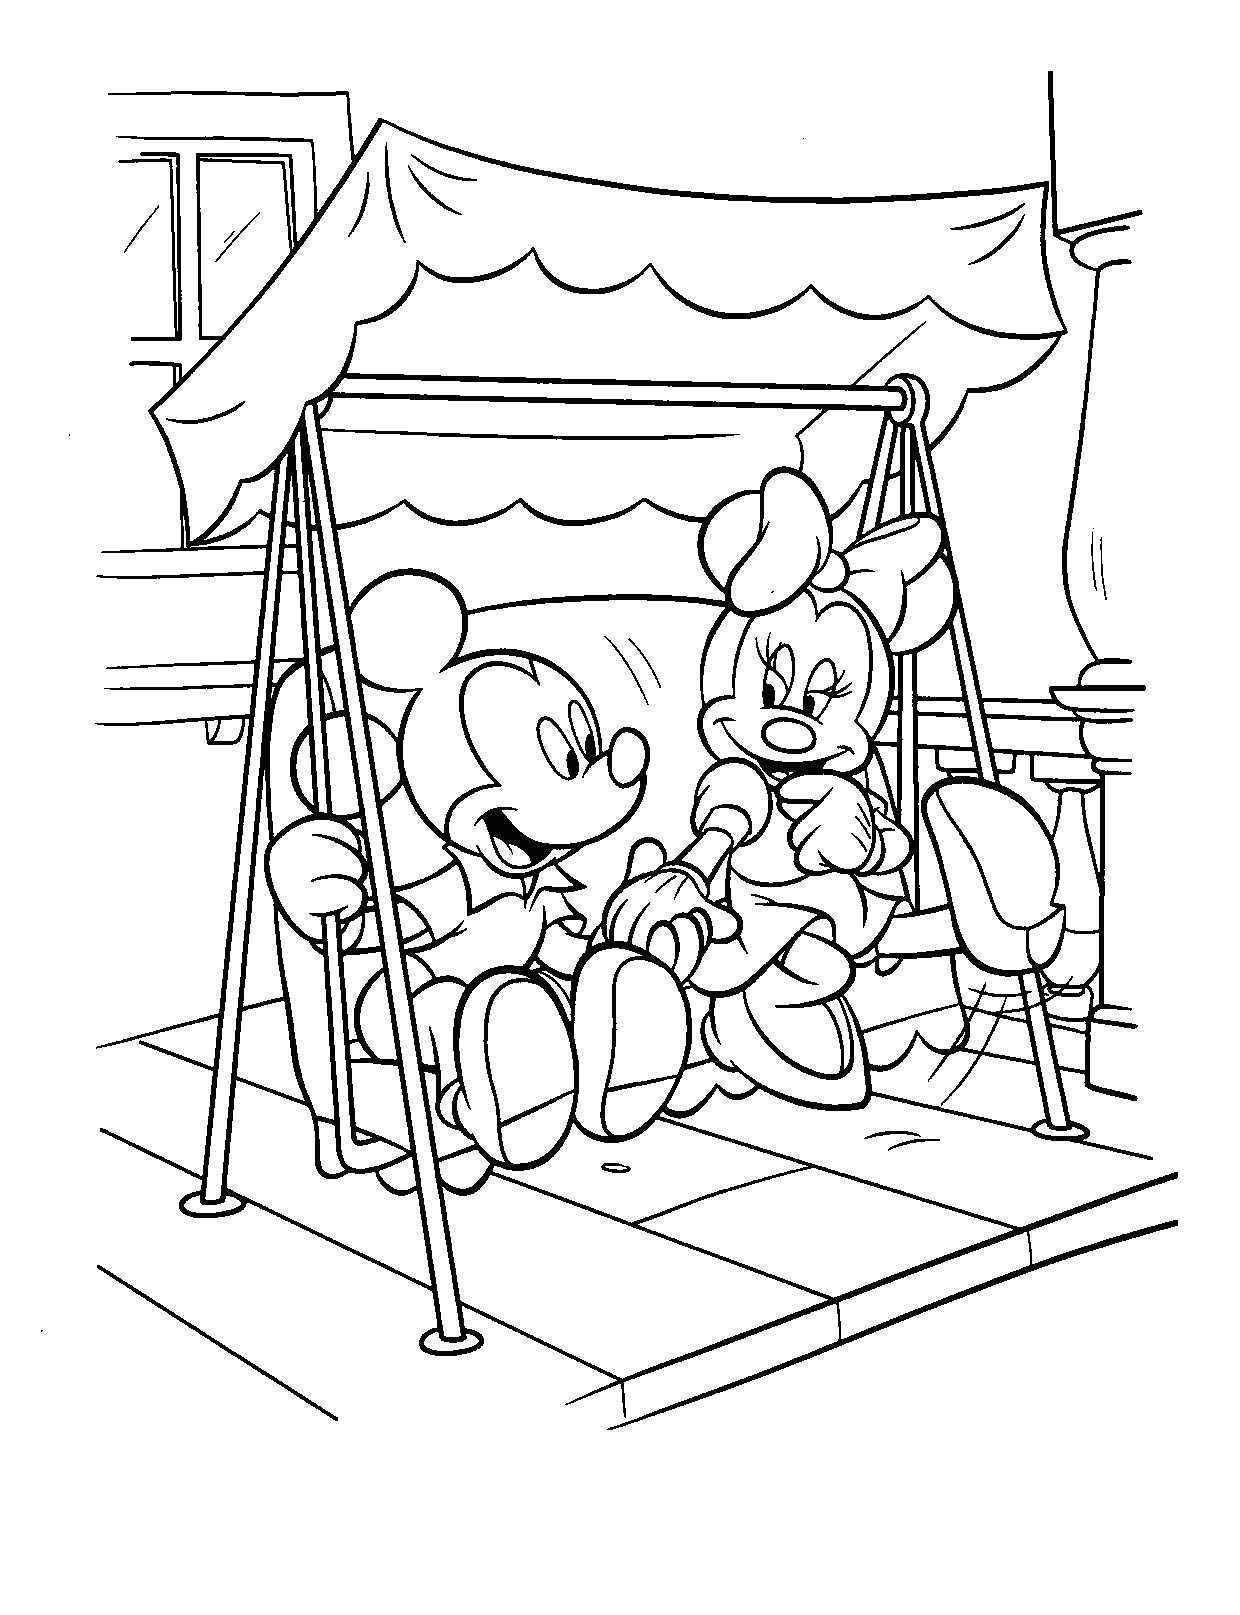 1240x1615 Top Mickey Minnie Mouse Coloring Pages Free Coloring Page